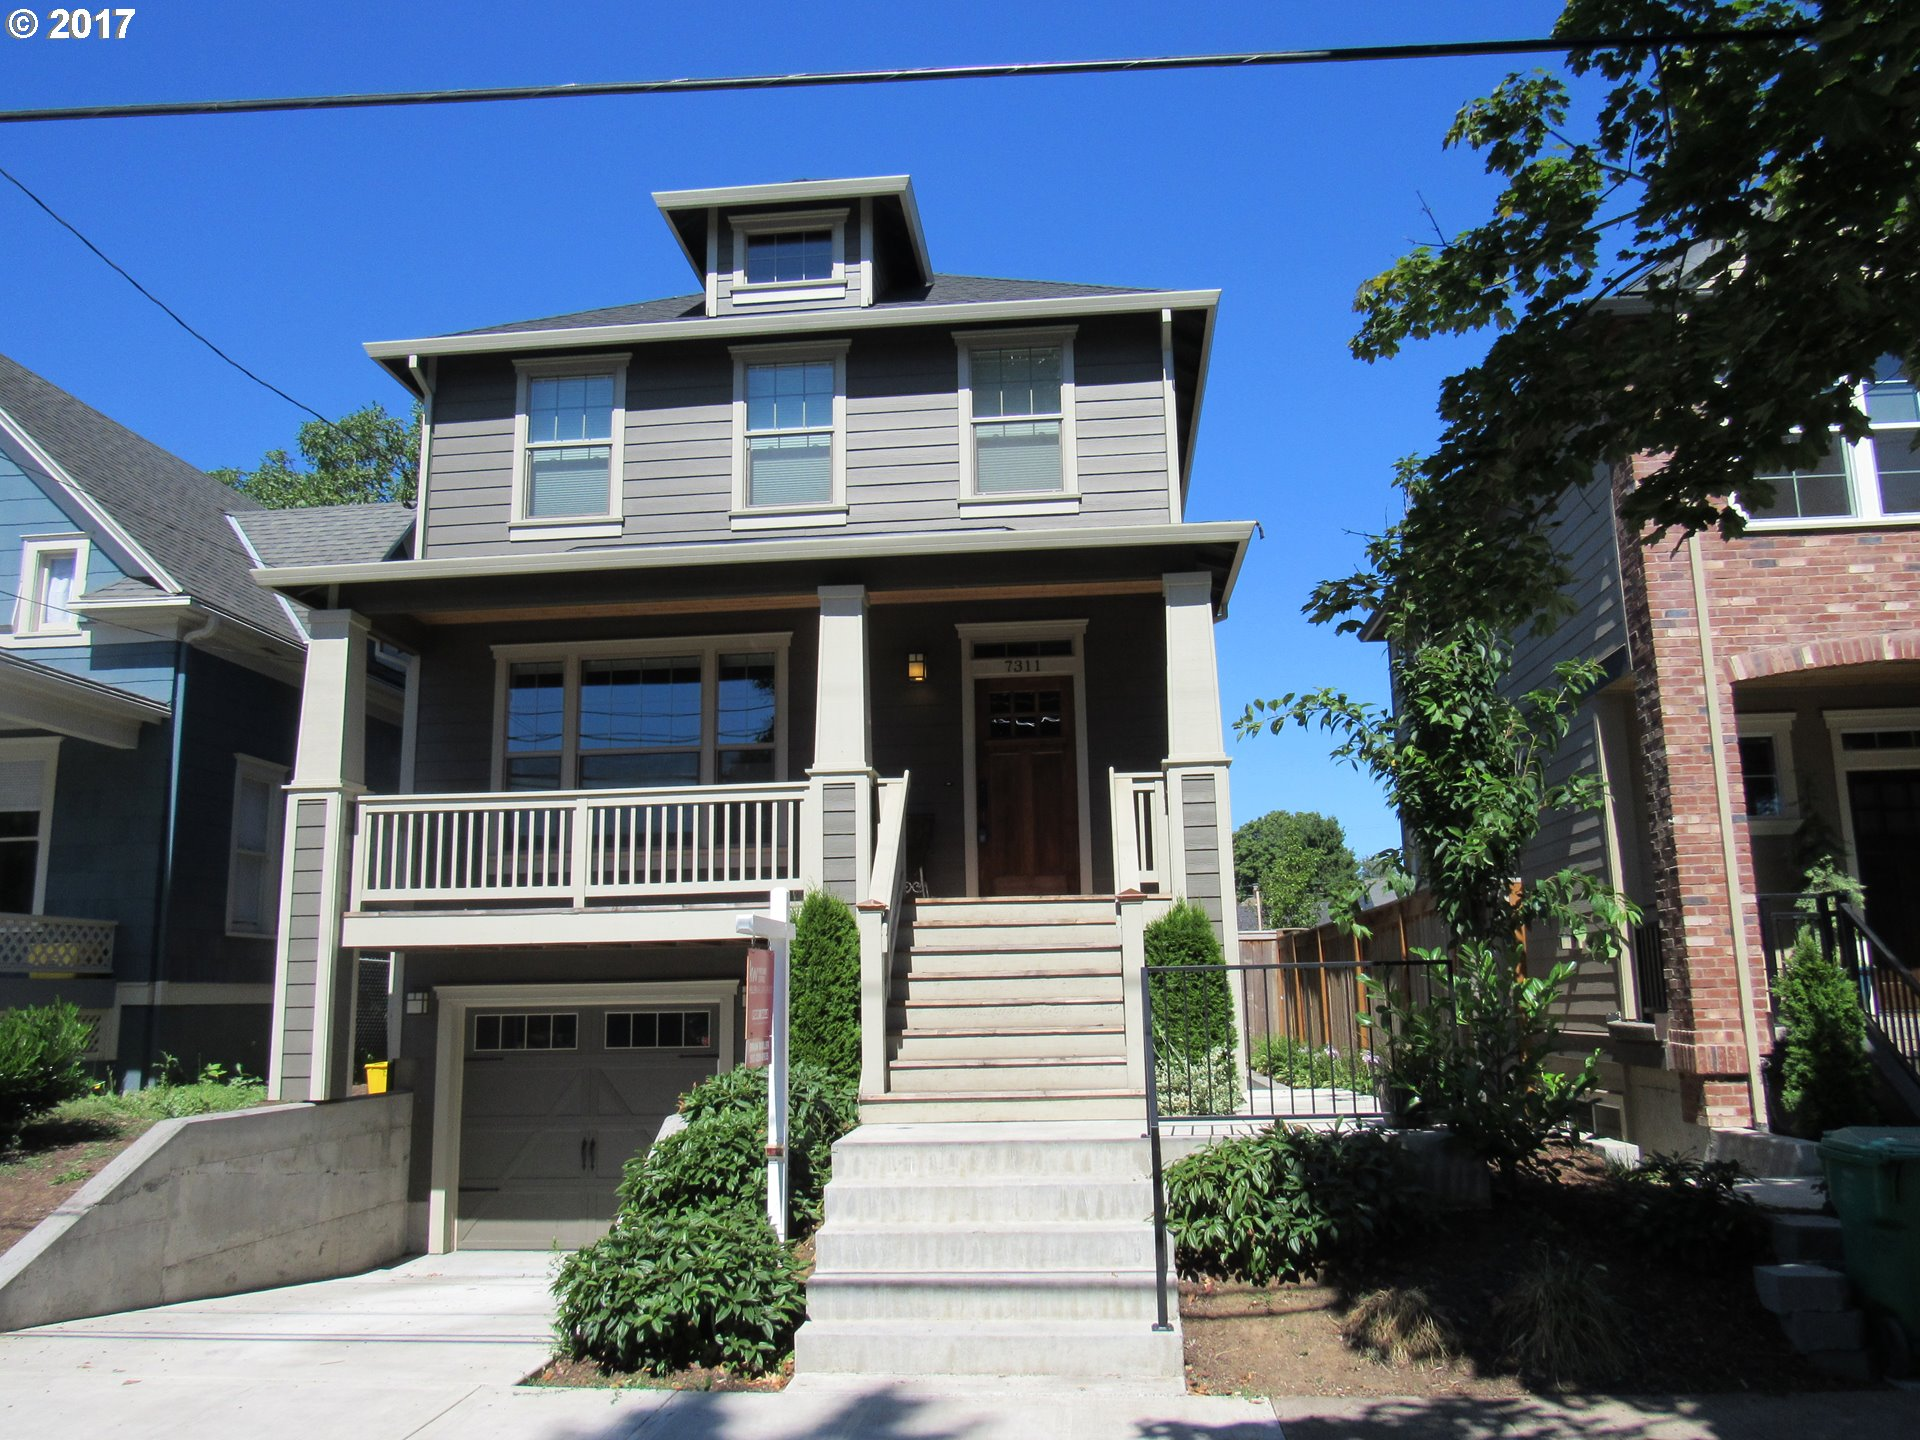 Beautiful 2773 square ft craftsman style home with 4 bedrooms and 3.5 baths. House has  quartz counter tops, stainless appliances, gourmet kitchen, hardwood floors, covered deck, gas fireplaces and a soaking tub in the master. Located blocks from the University of Portland, shopping, restaurants and public transportation. Lucrative one bedroom apt with private entrance downstairs, Airbnb or monthly rental.